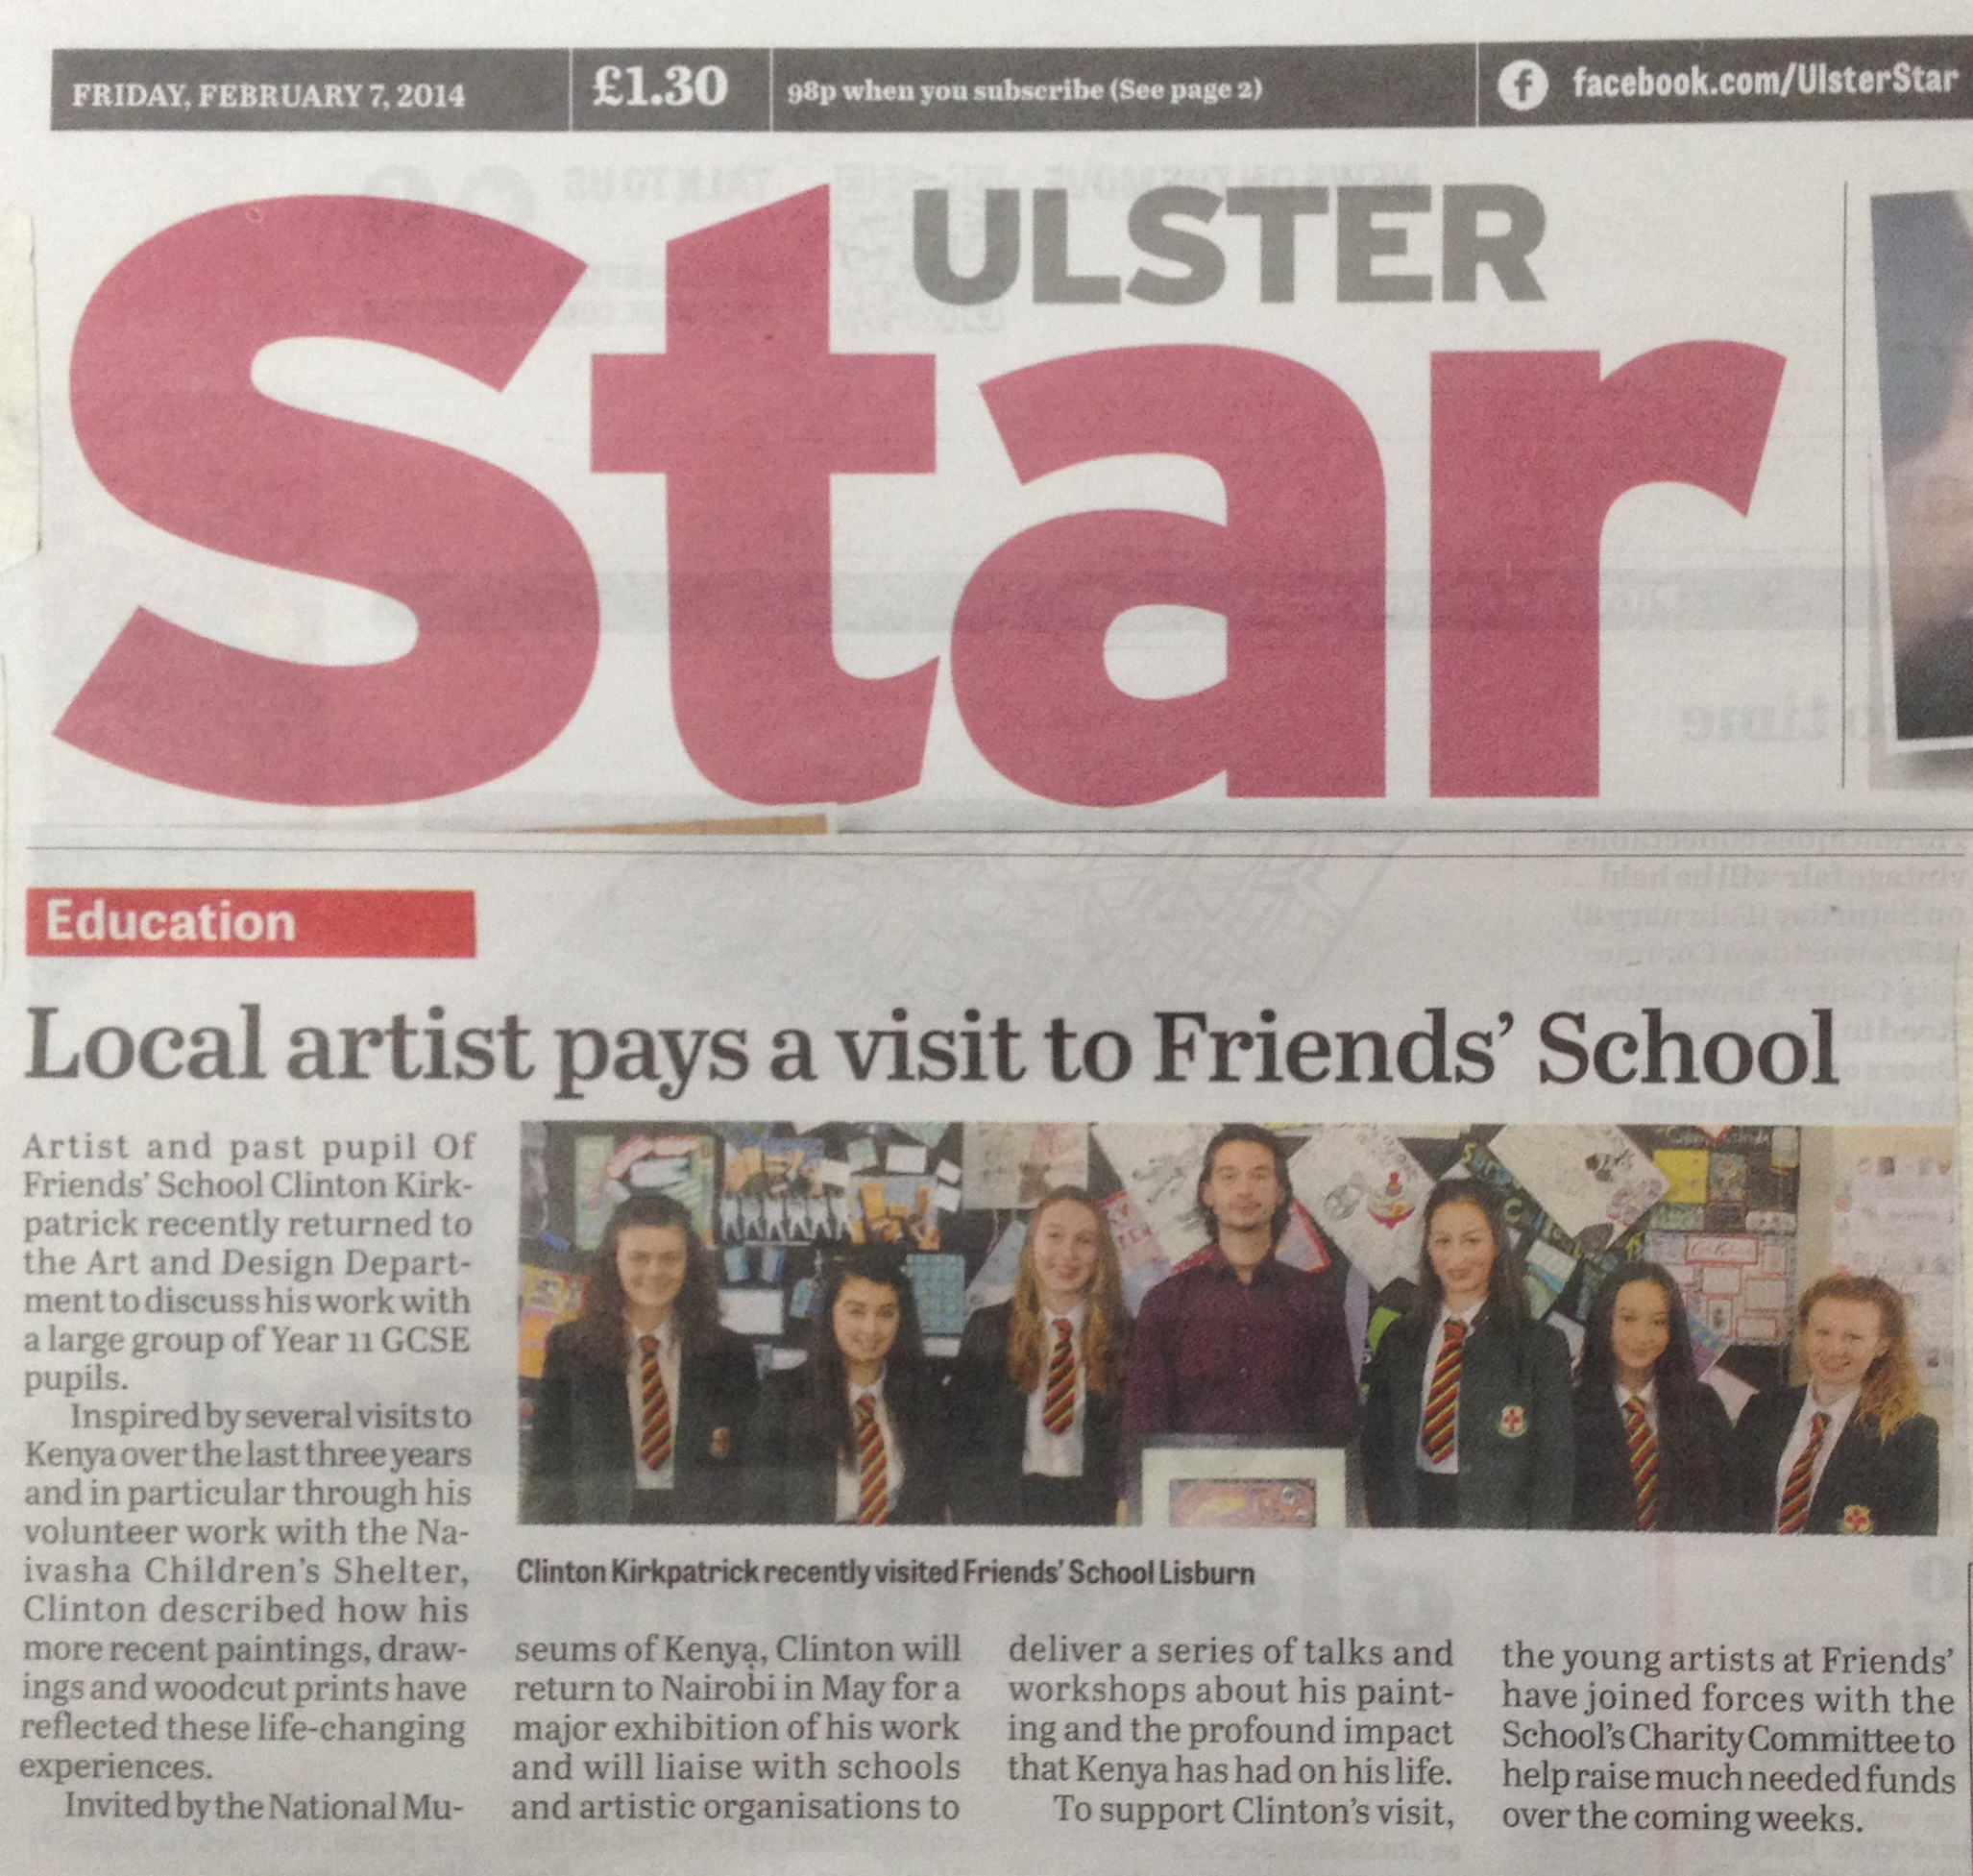 Ulster star. 7 Feb 2014